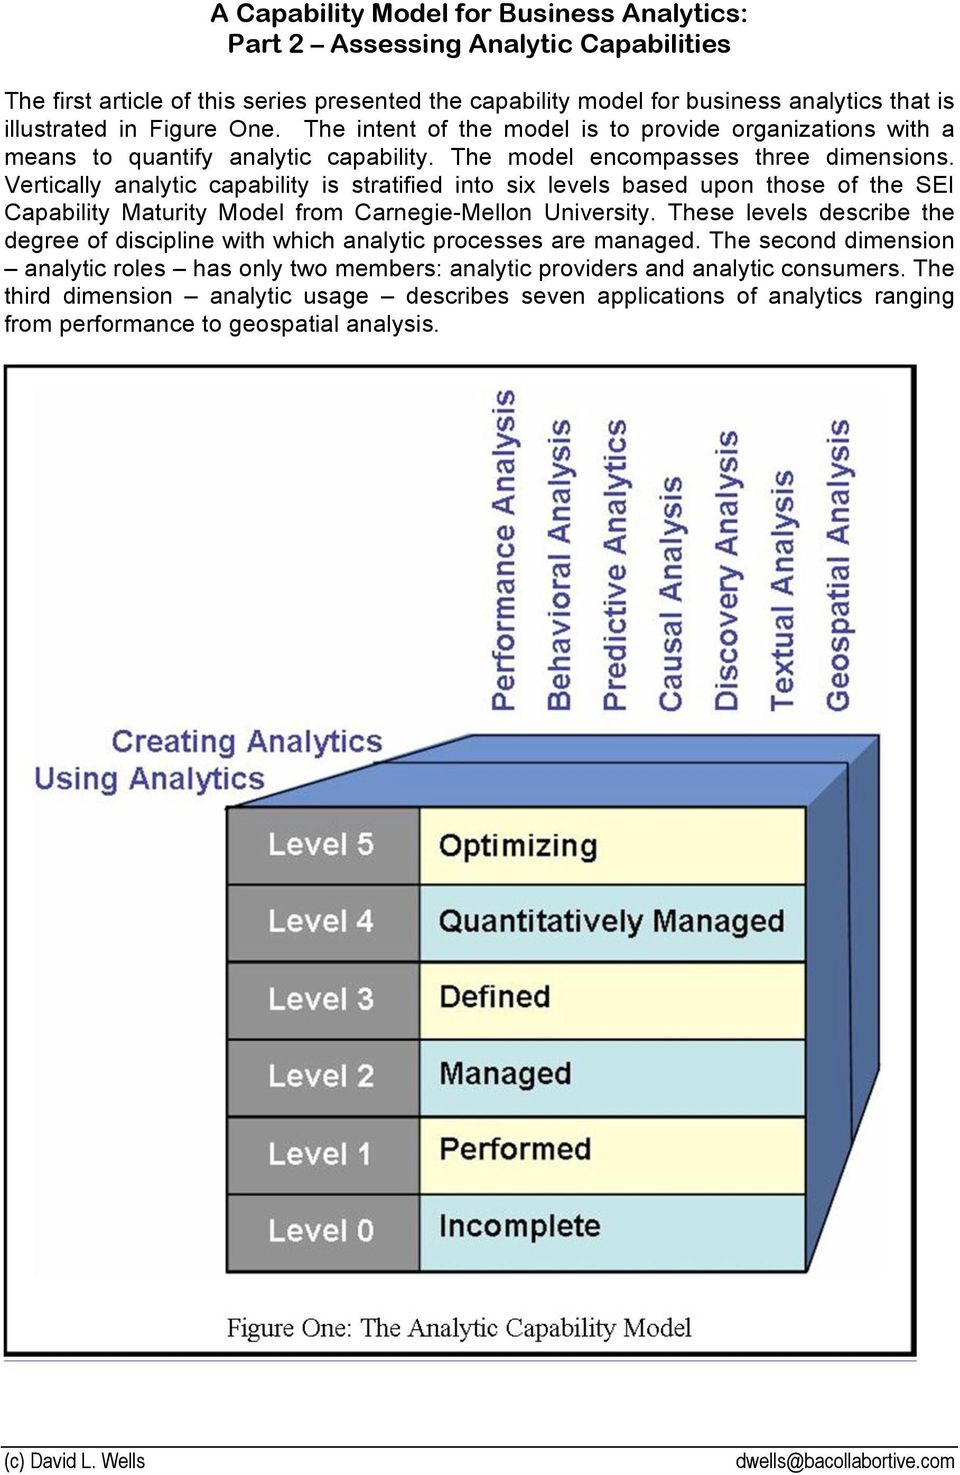 Vertically analytic capability is stratified into six levels based upon those of the SEI Capability Maturity Model from Carnegie-Mellon University.